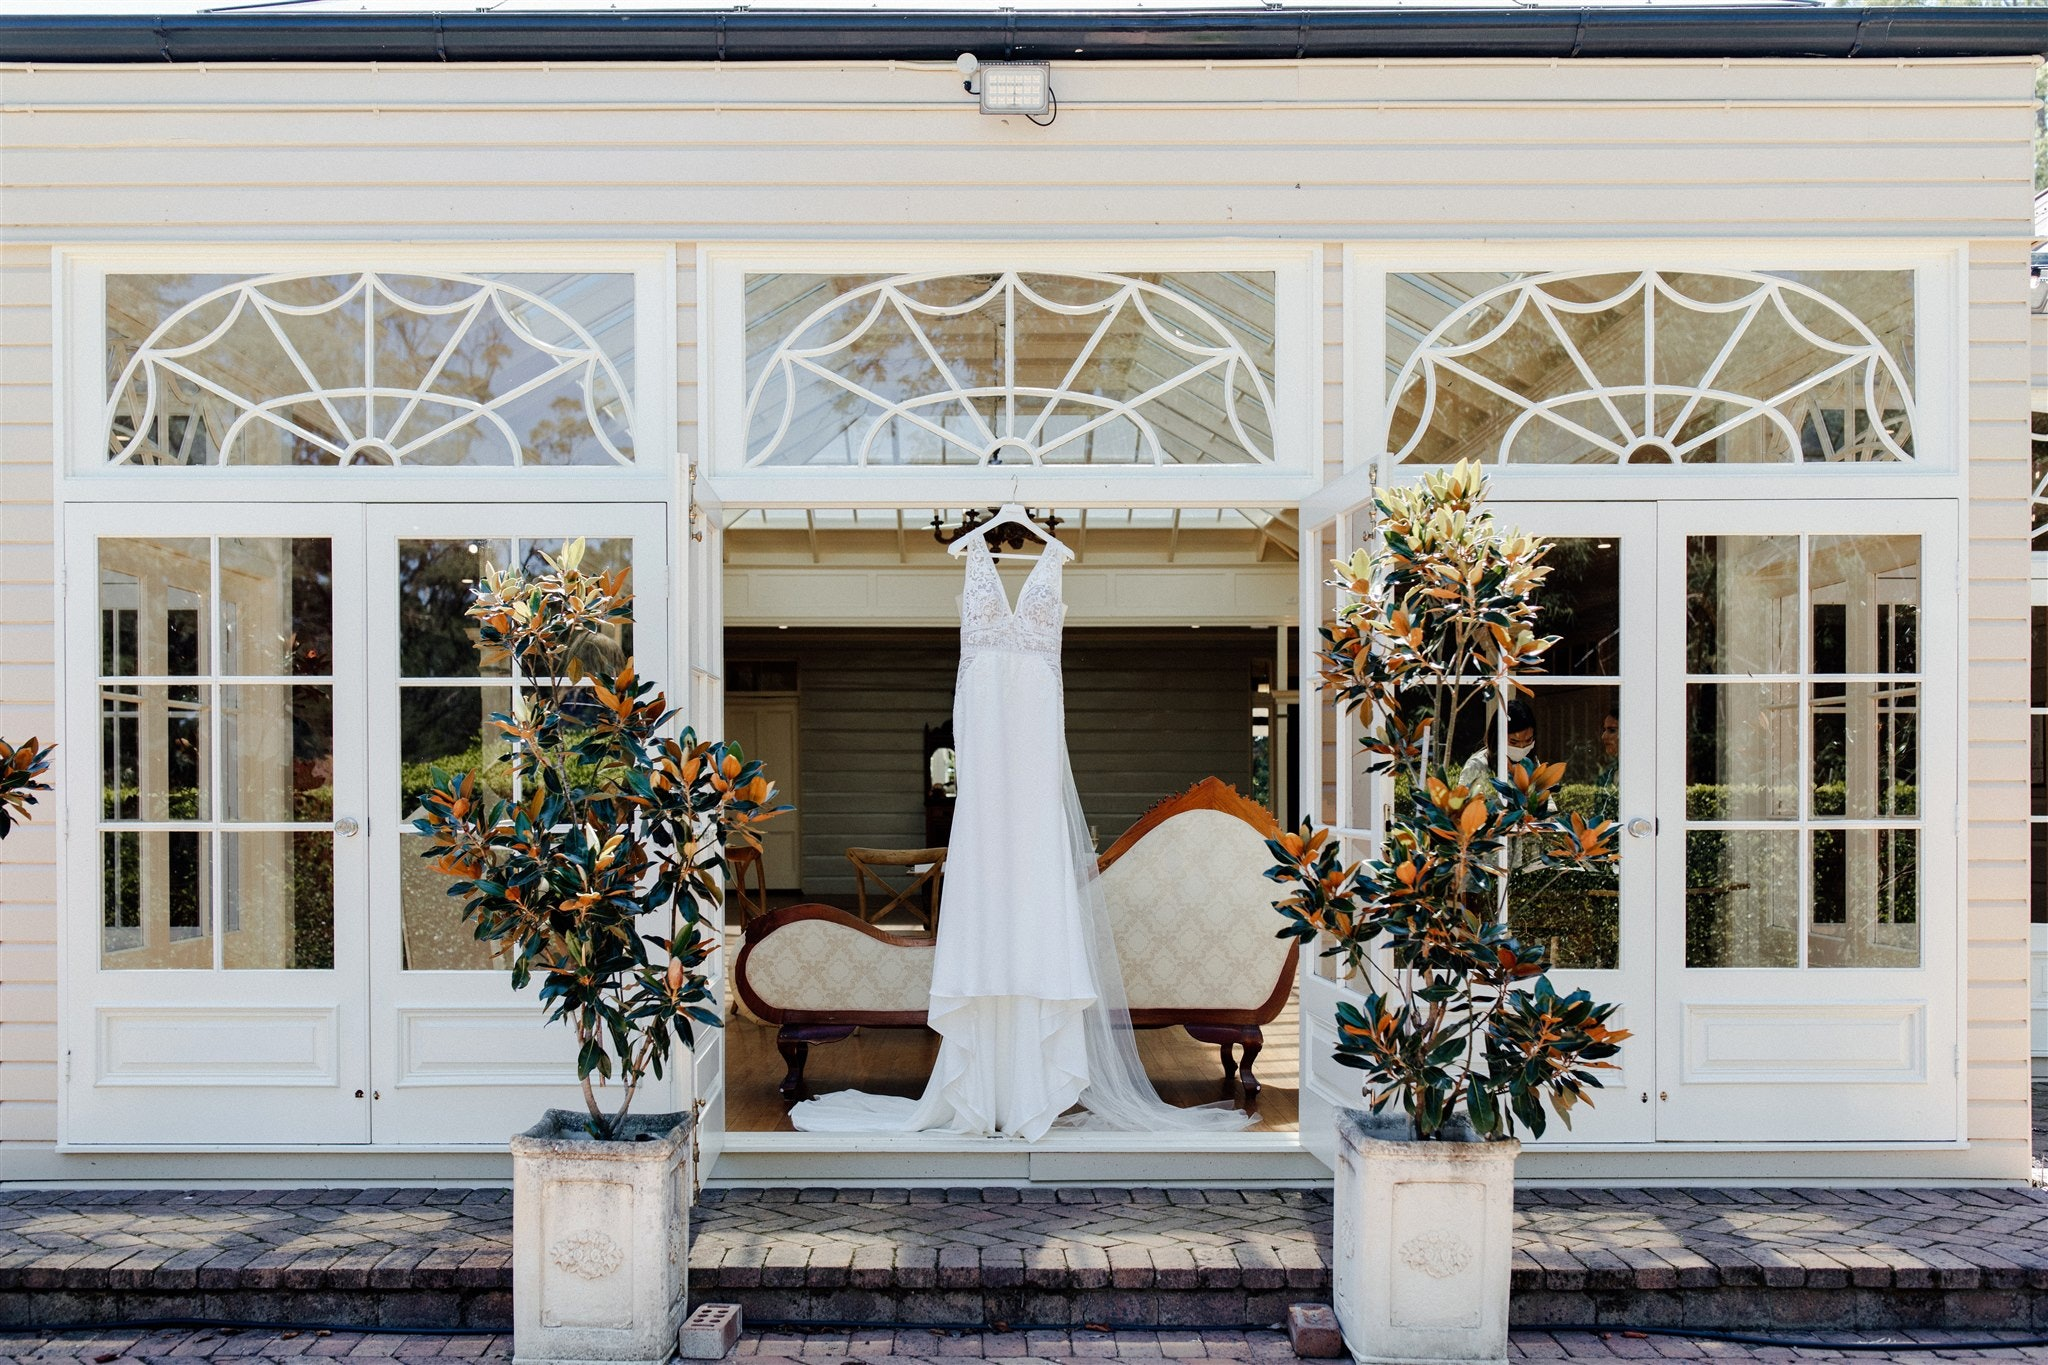 Wedding dress hanging in Conservatory